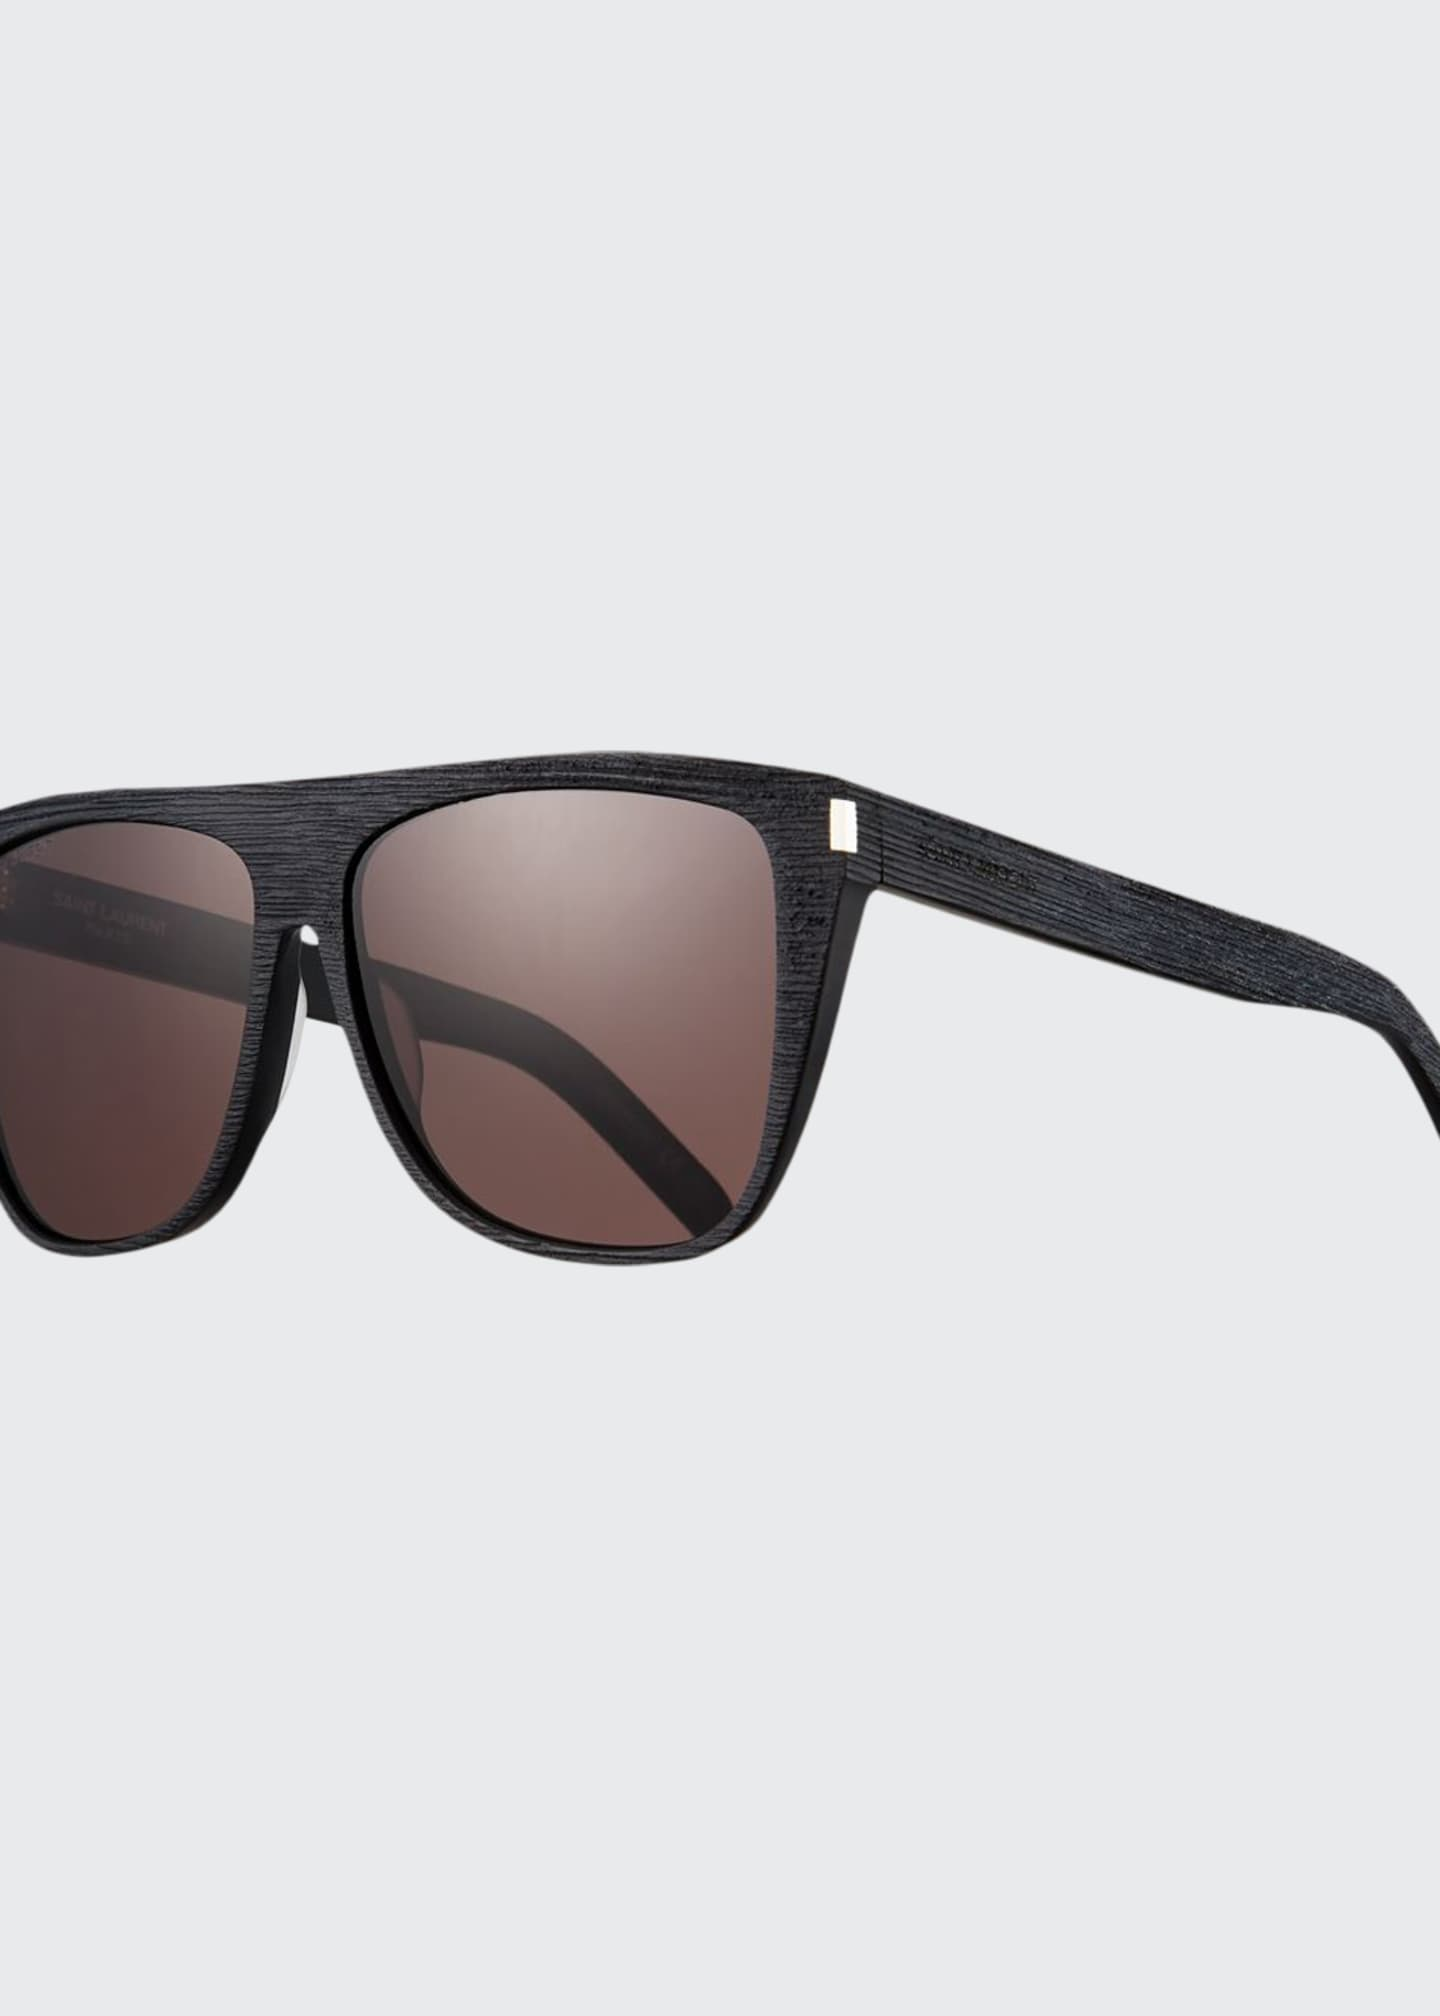 Men's SL 292 Acetate Sunglasses